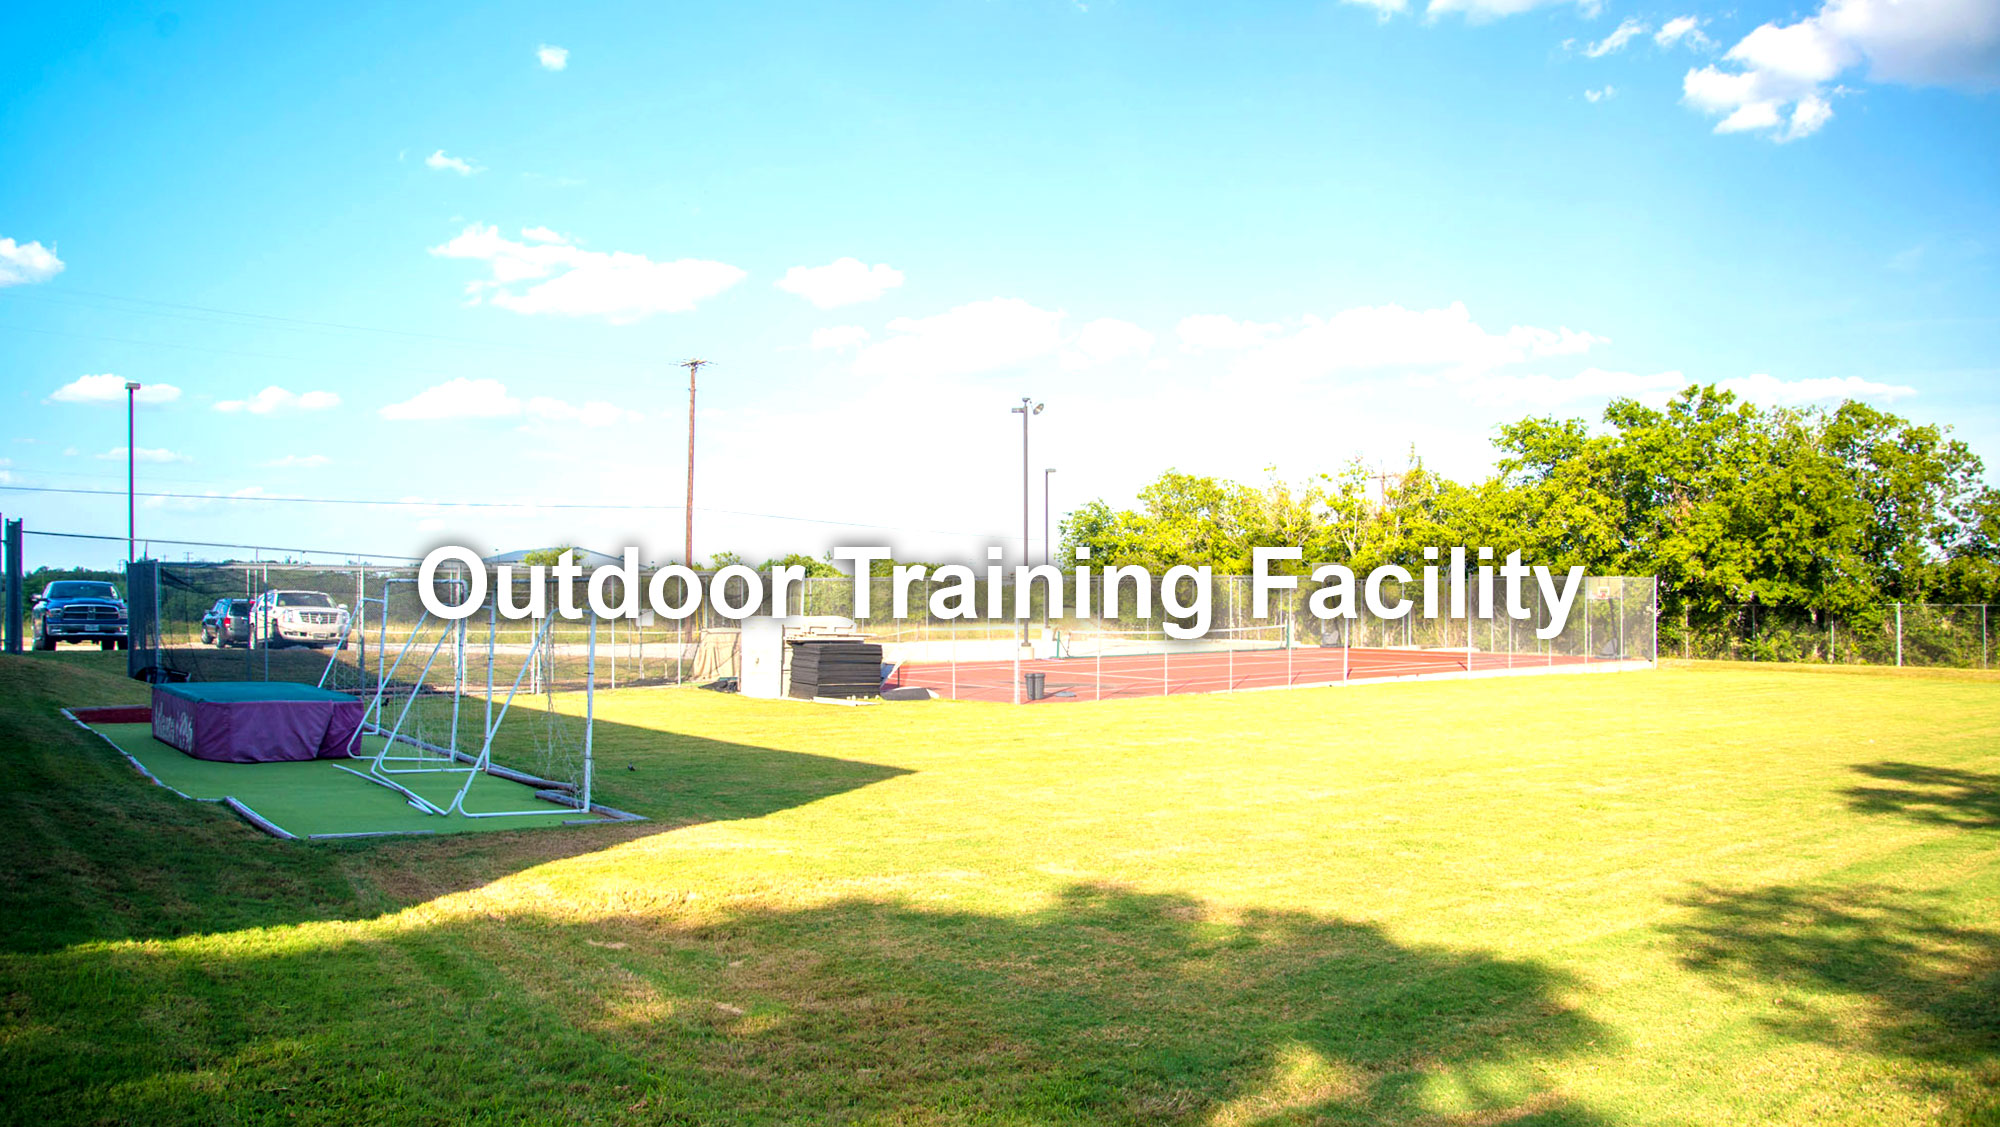 Outdoor Training Facility